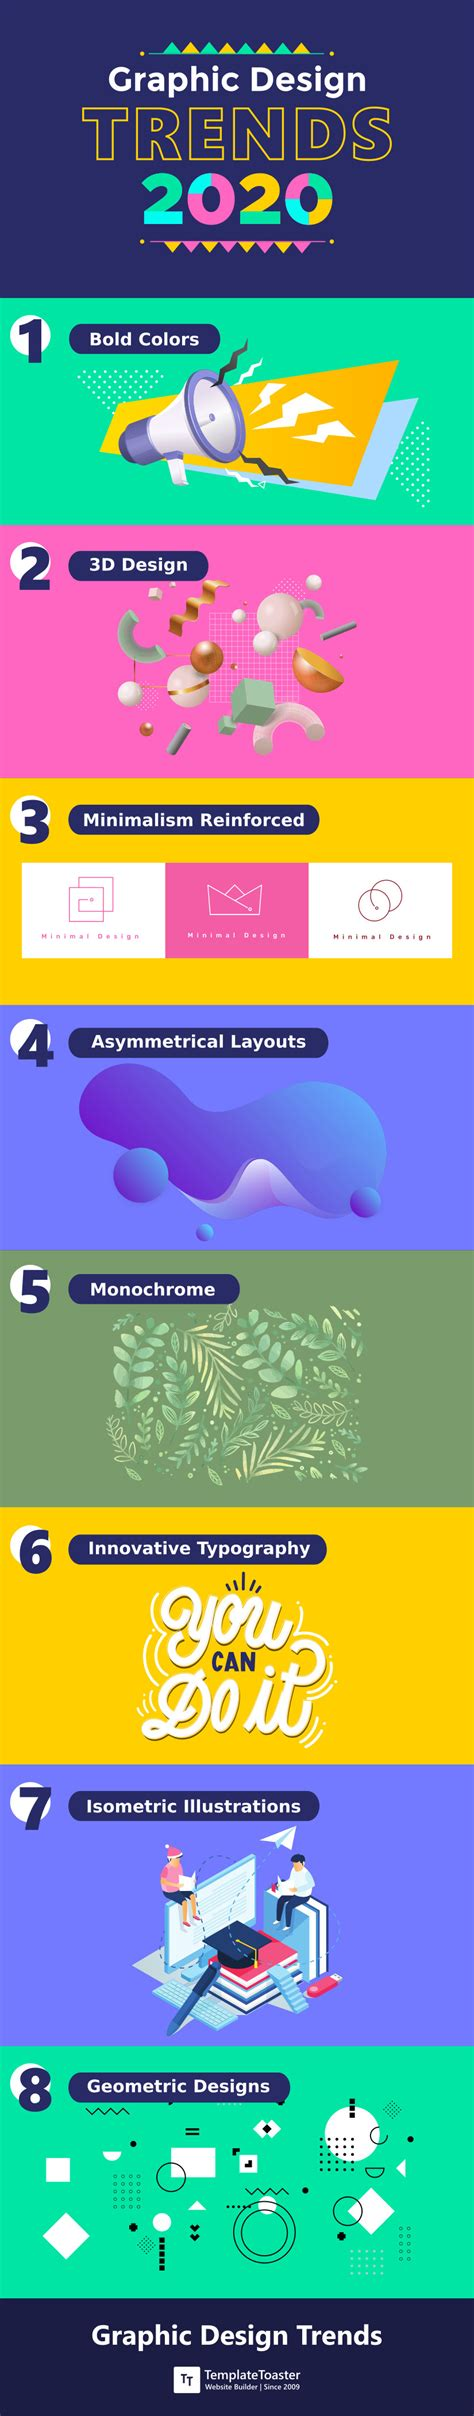 Graphic Design Trends 2020: Guide for Designers